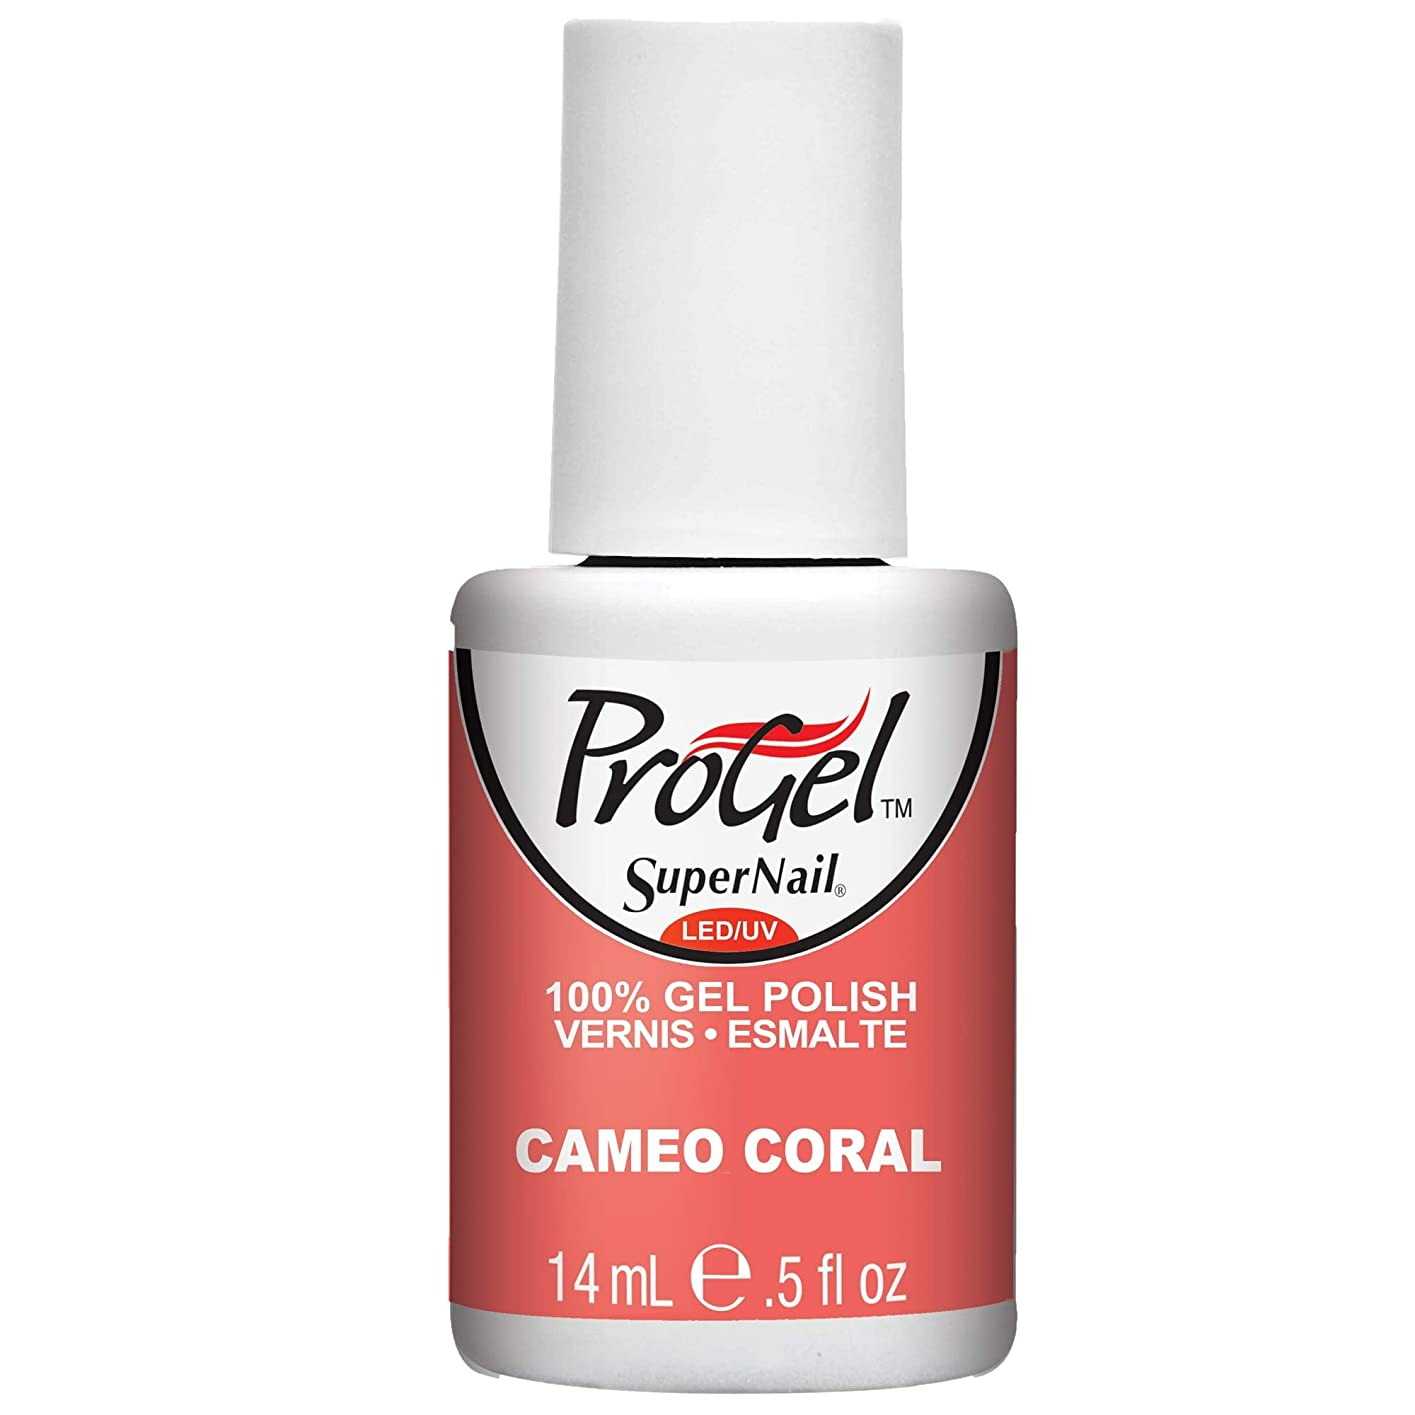 命令アンソロジー行くSuperNail ProGel Gel Polish - Cameo Coral - 0.5oz / 14ml